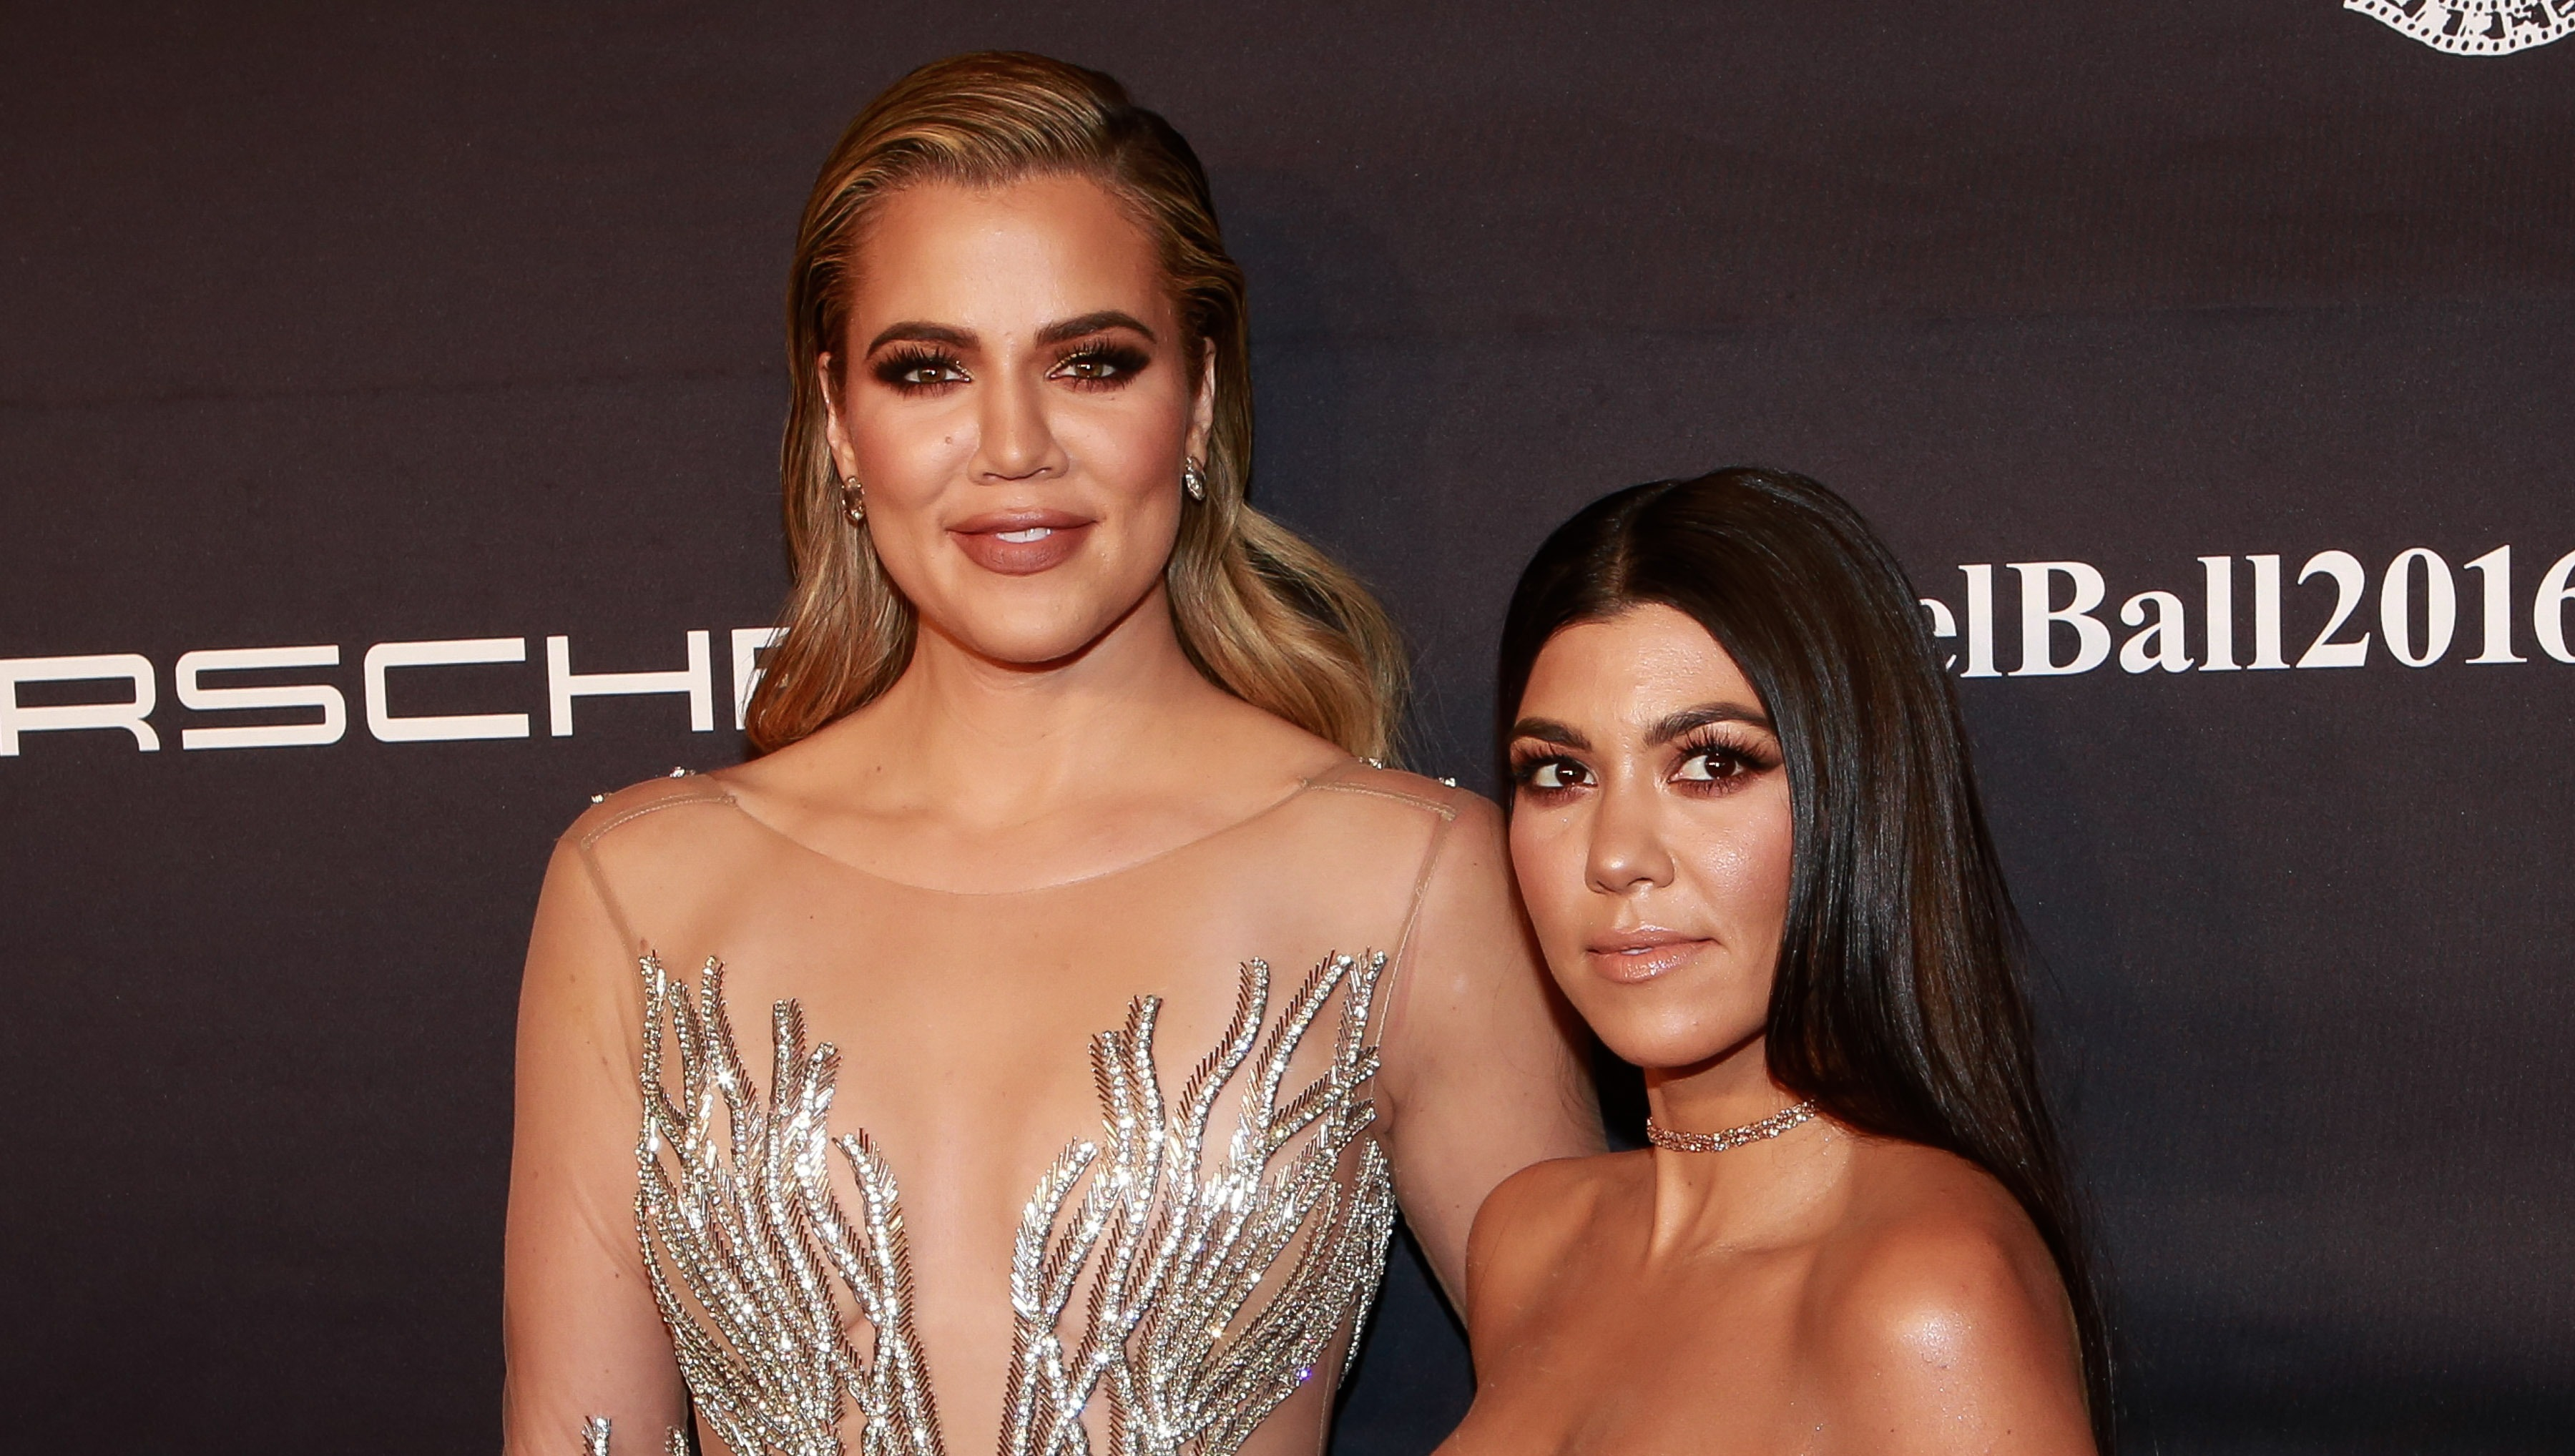 Khloe and Kourtney Kardashian posing